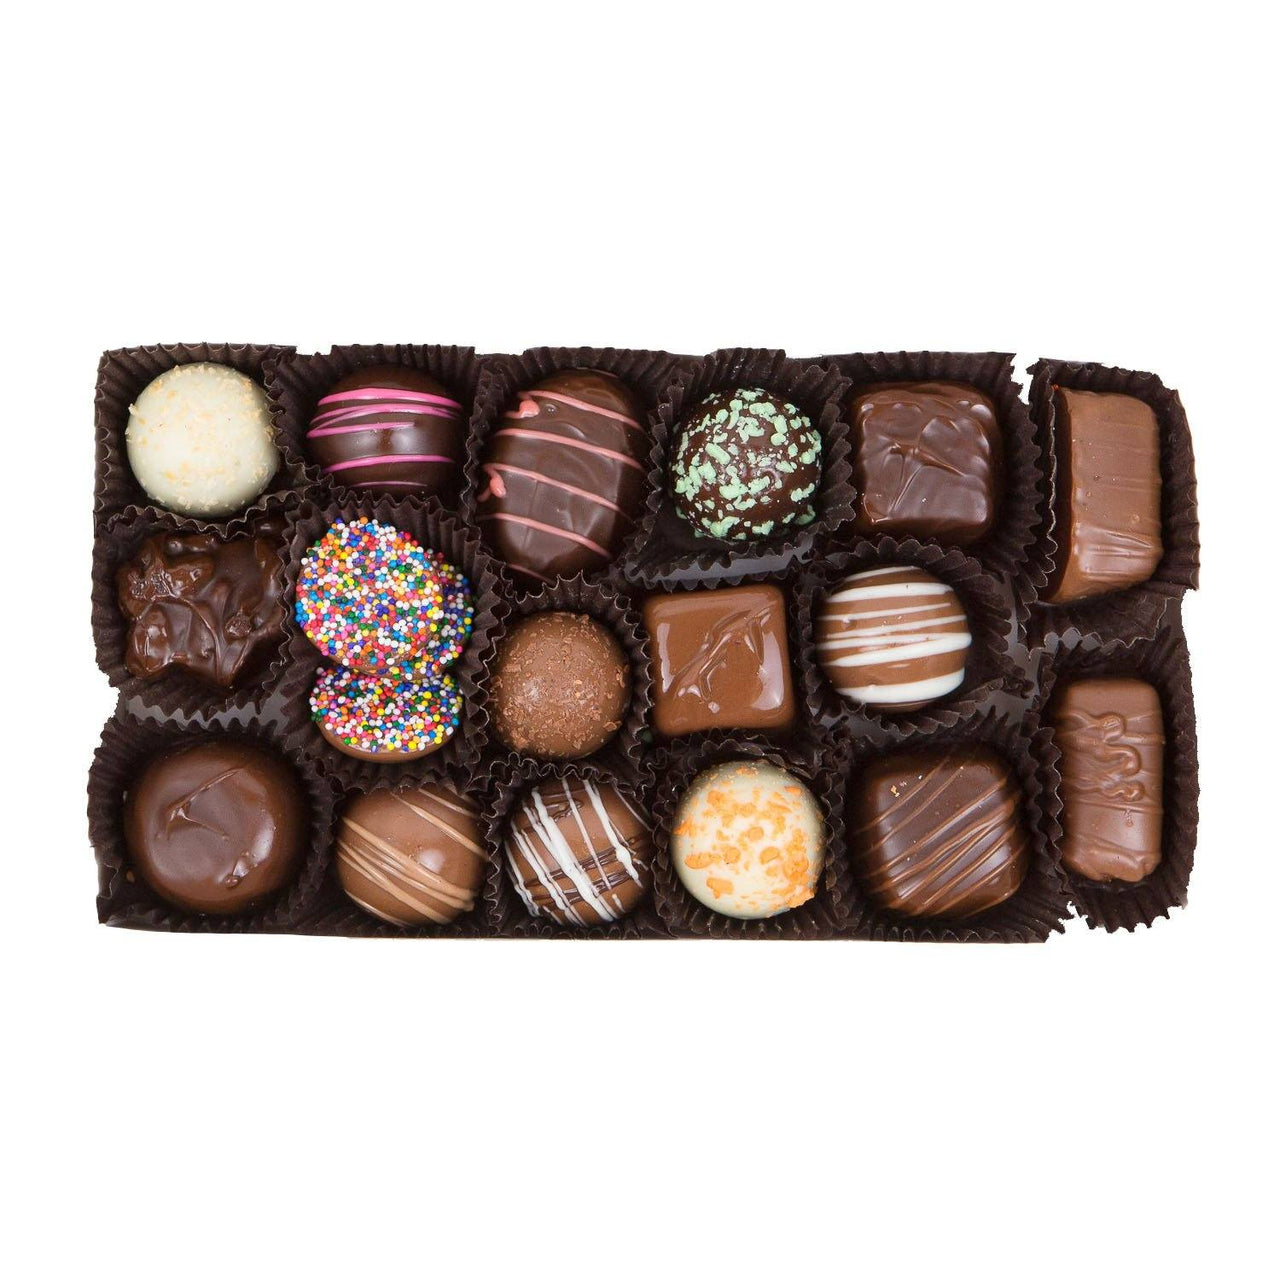 Gifts for Chocolate Lovers - Assorted Chocolate Gift Box - Jackie's Chocolate